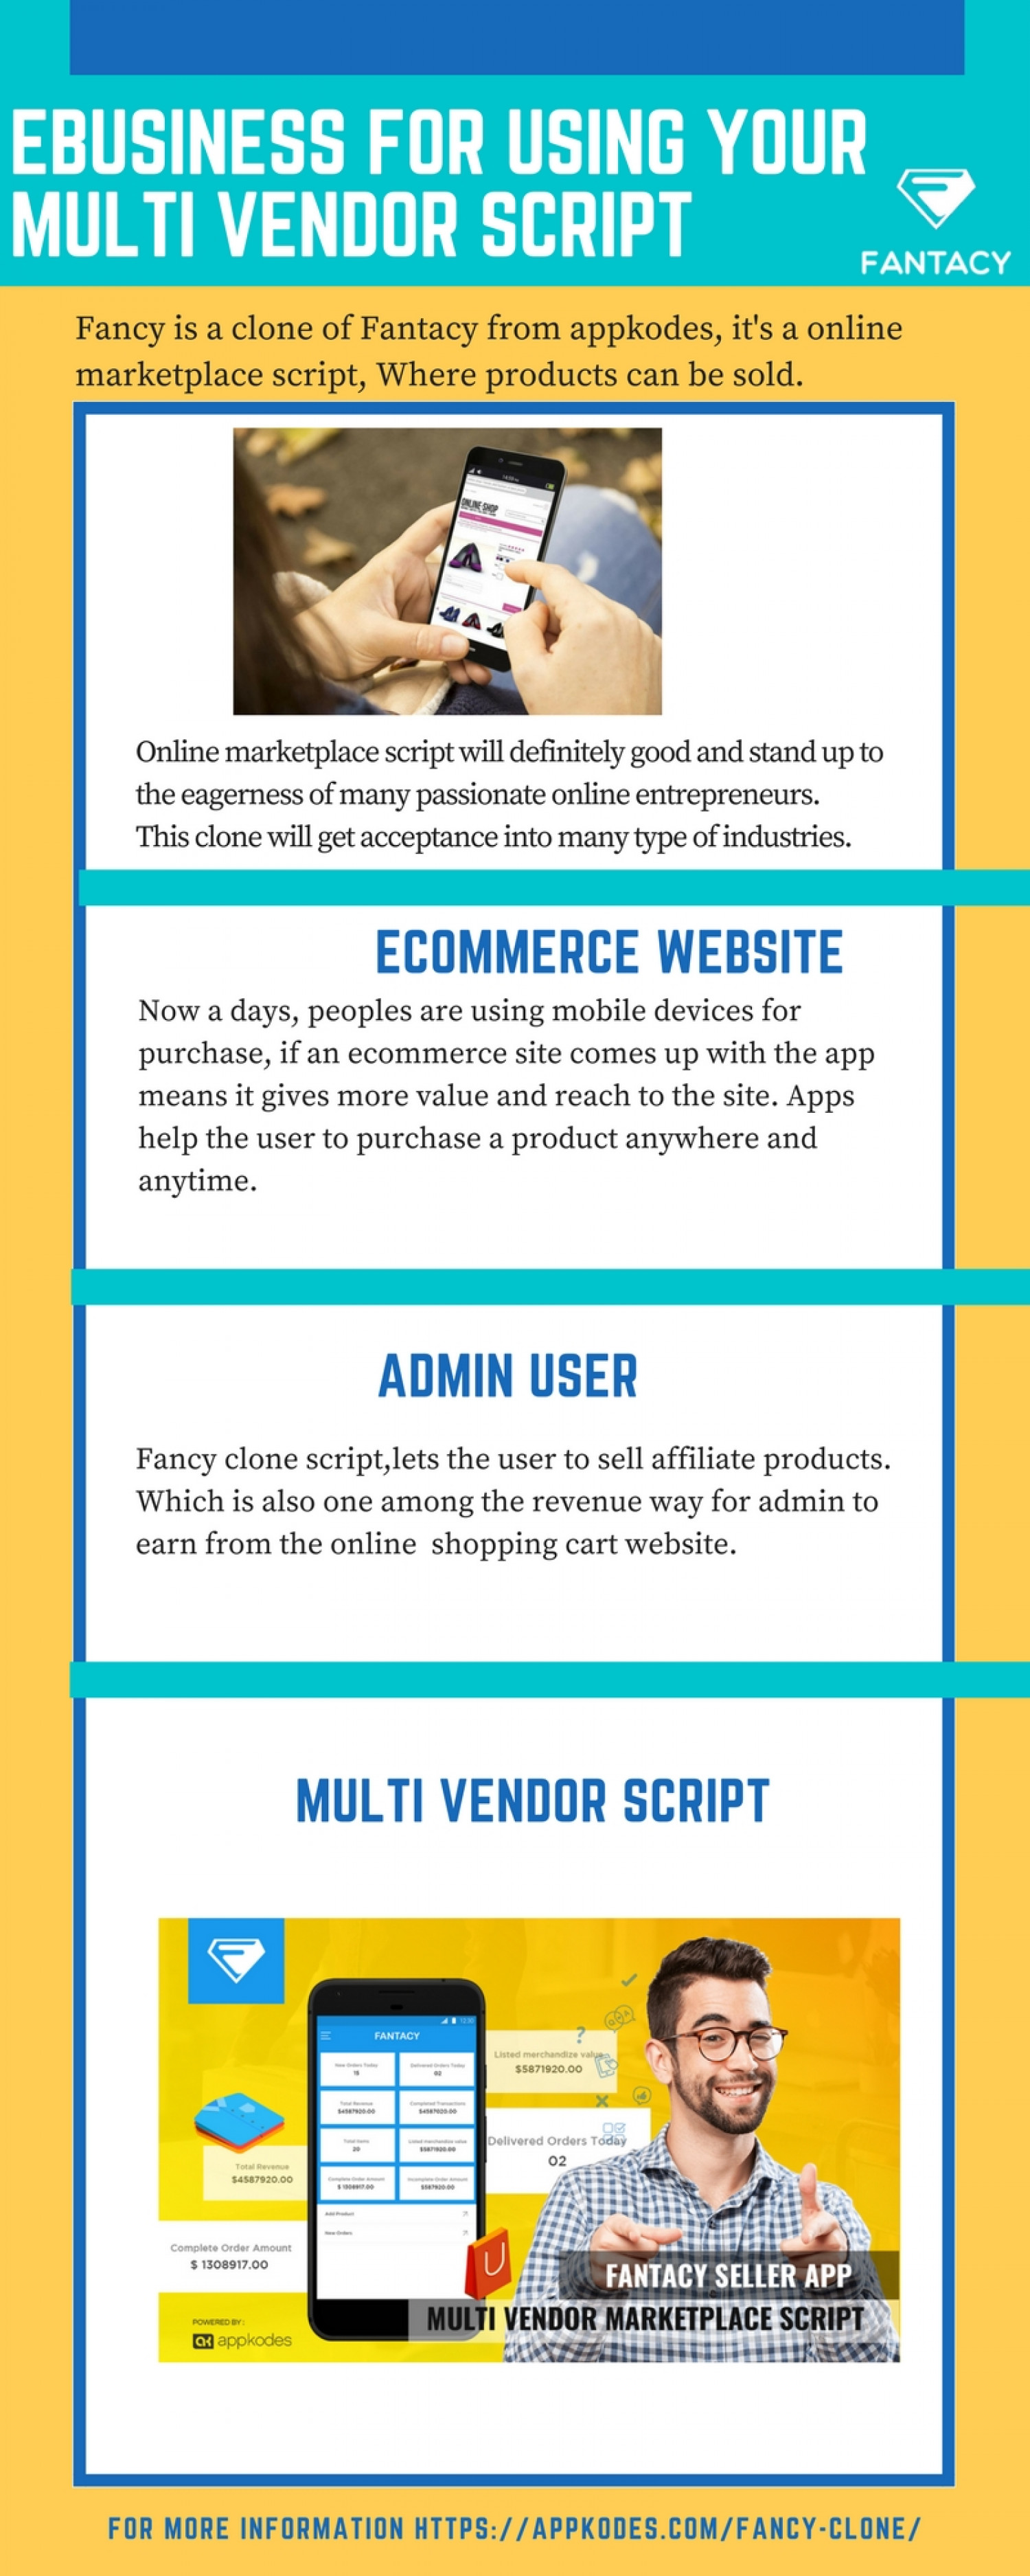 Ebusiness for using your Multi Vendor Script Infographic